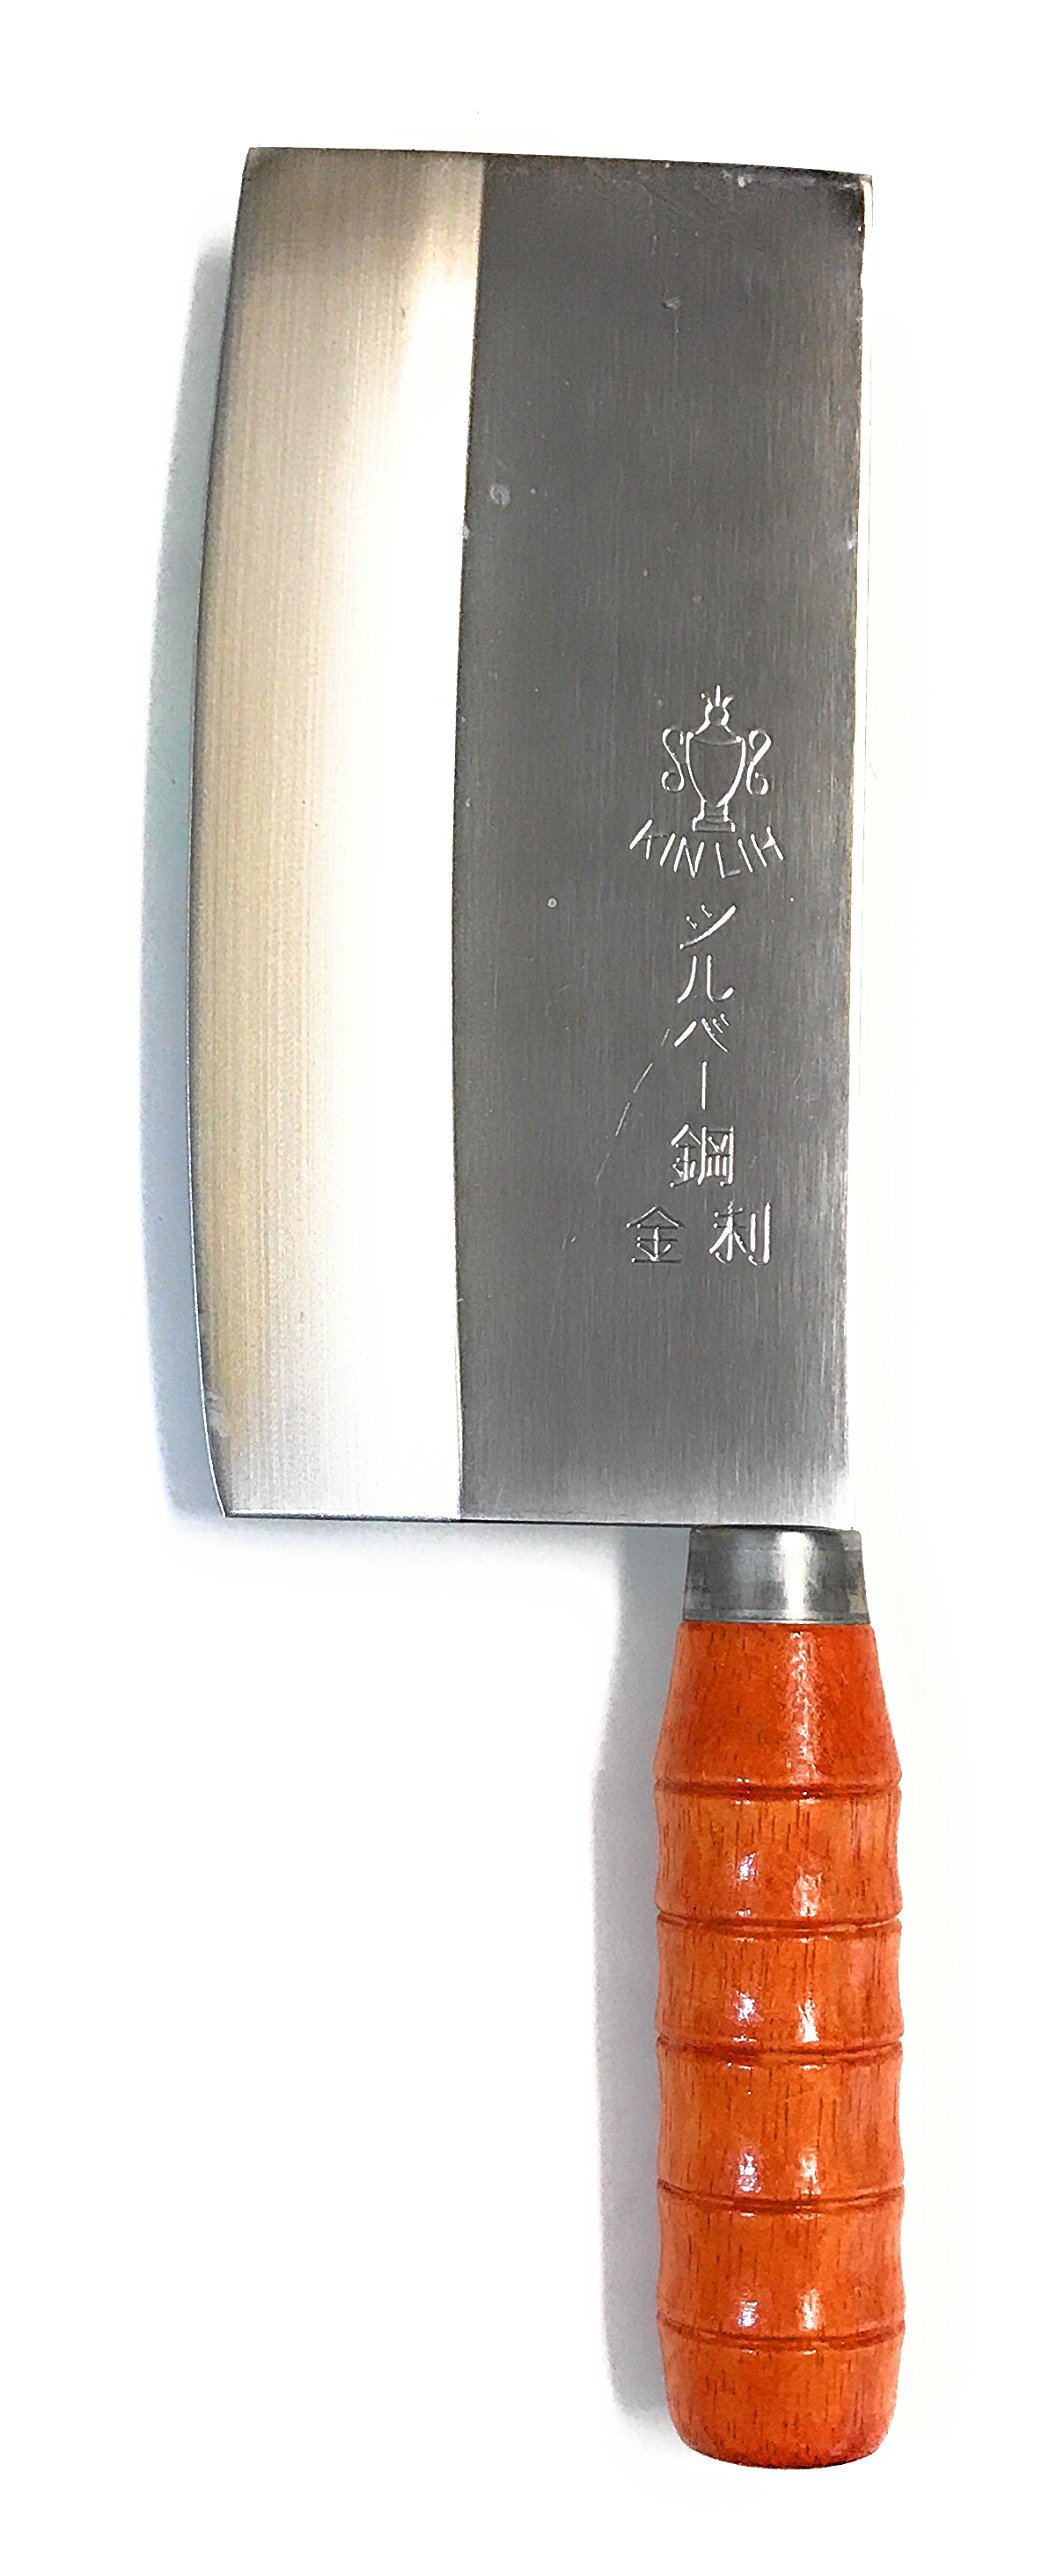 Traditional Chinese Kitchen Vegetable Cleaver Knife 7 Inch By TLA by TLA Source Deals